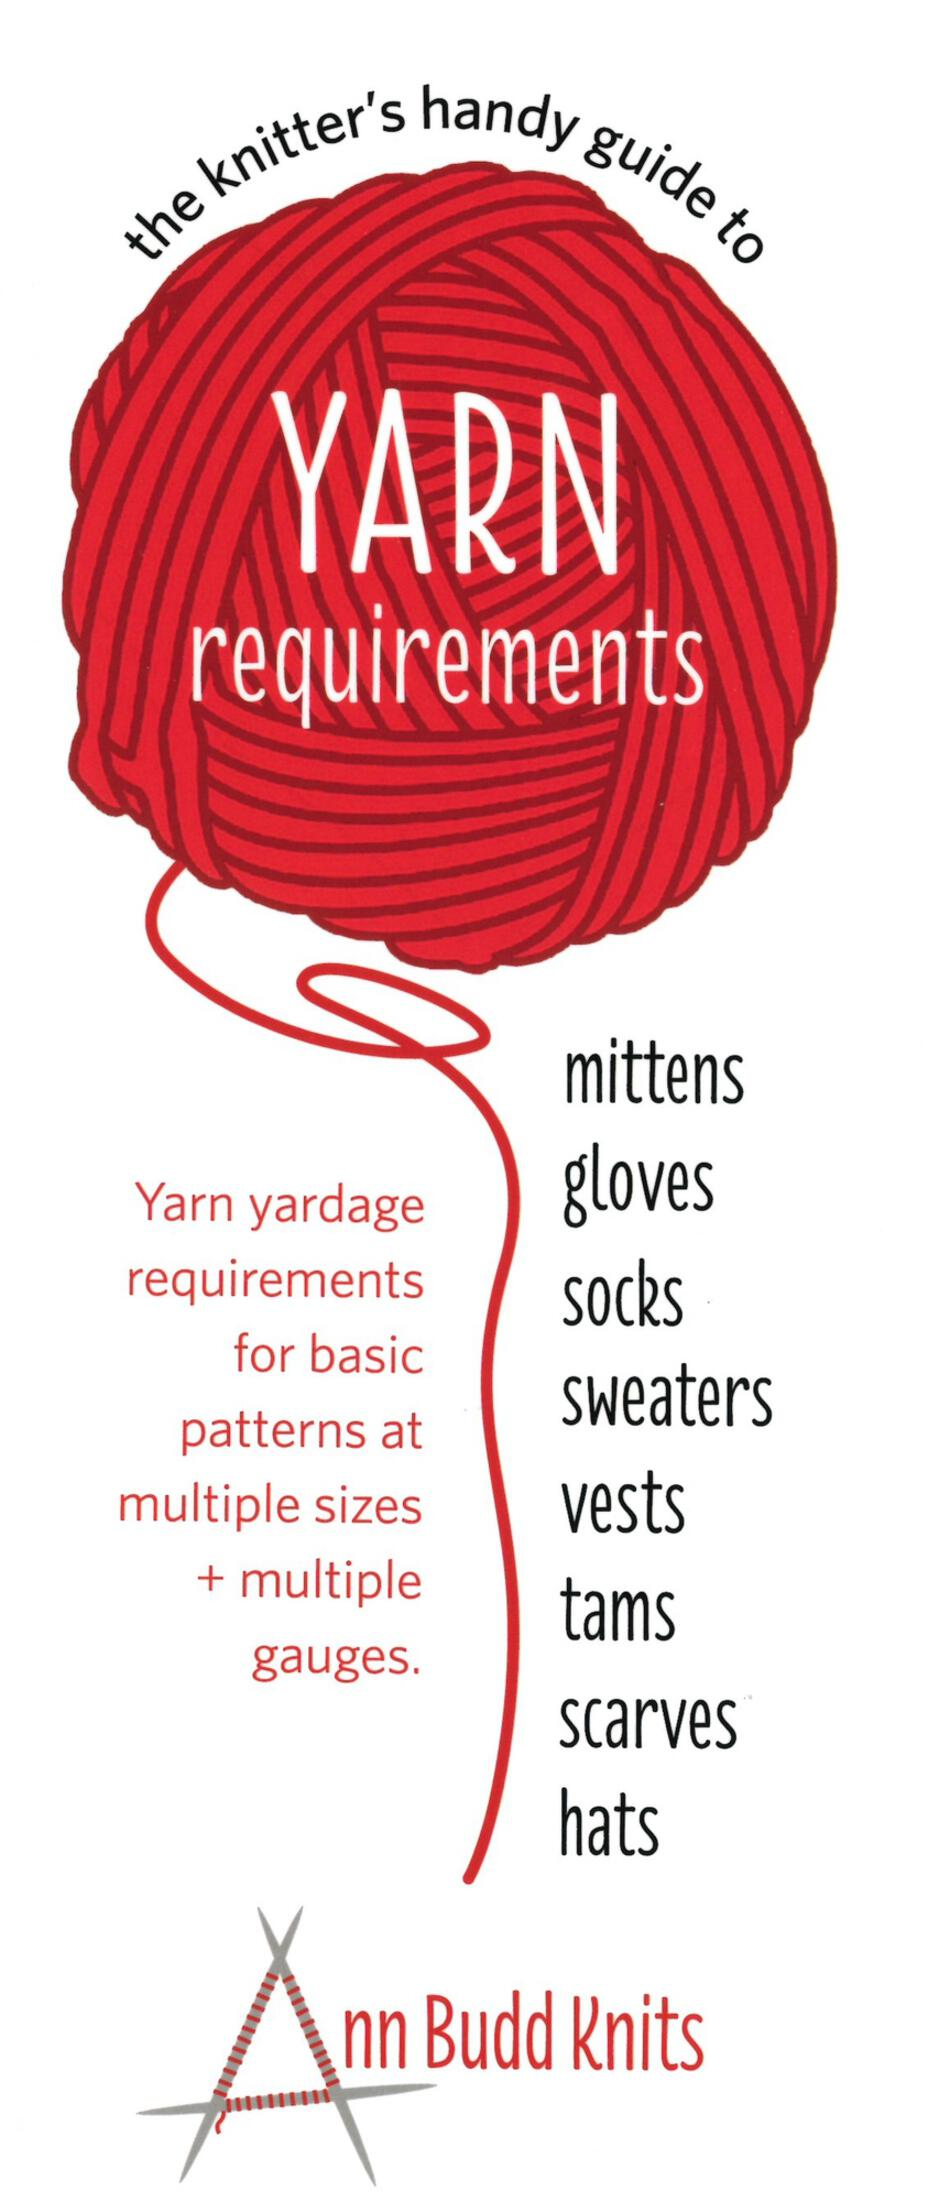 5278baabd Knitter s Handy Guide to Yarn Requirements Knitting Book. Author  Ann Budd